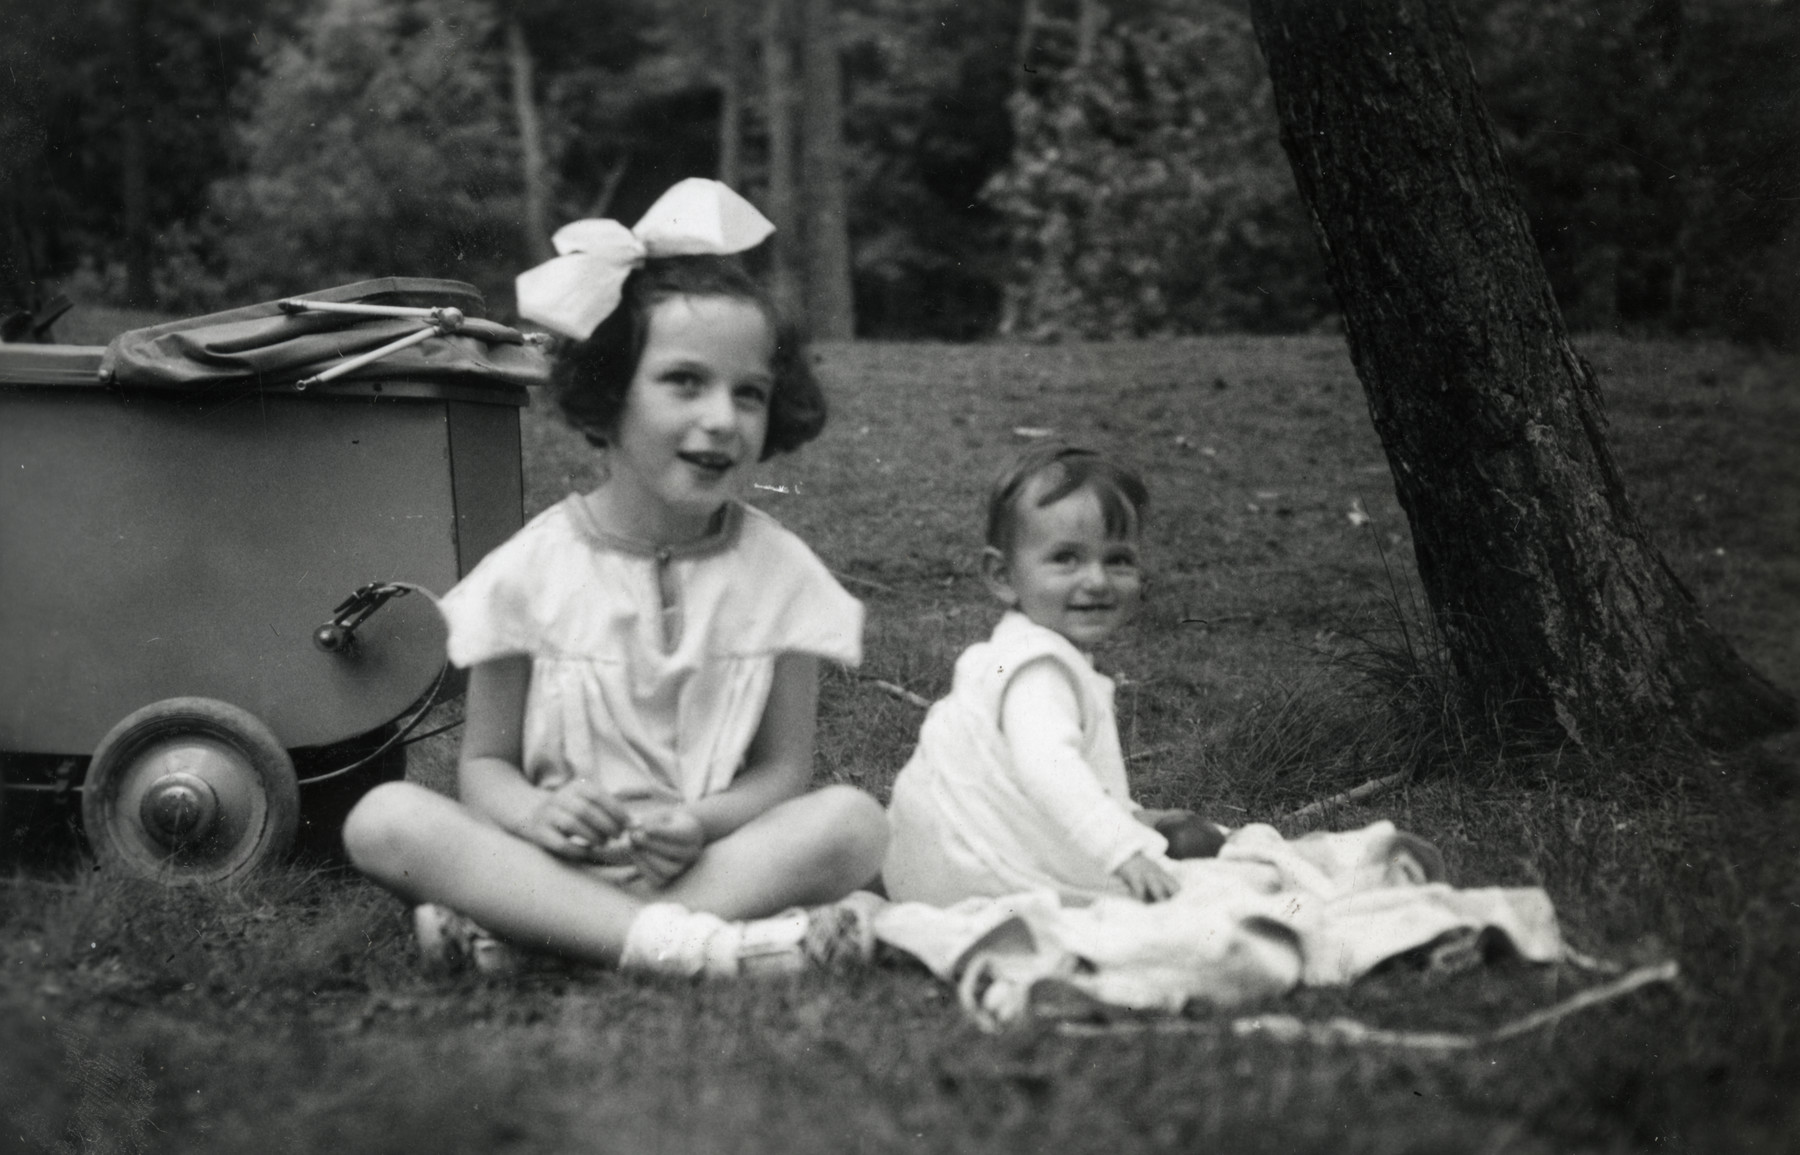 Two Jewish sisters sit on the grass next to a baby stroller.    Pictured are Henriette (left)  and Esther (right)  Mossel.  Esther is wearing a blouse brought back from her parent's visit to Palestine.